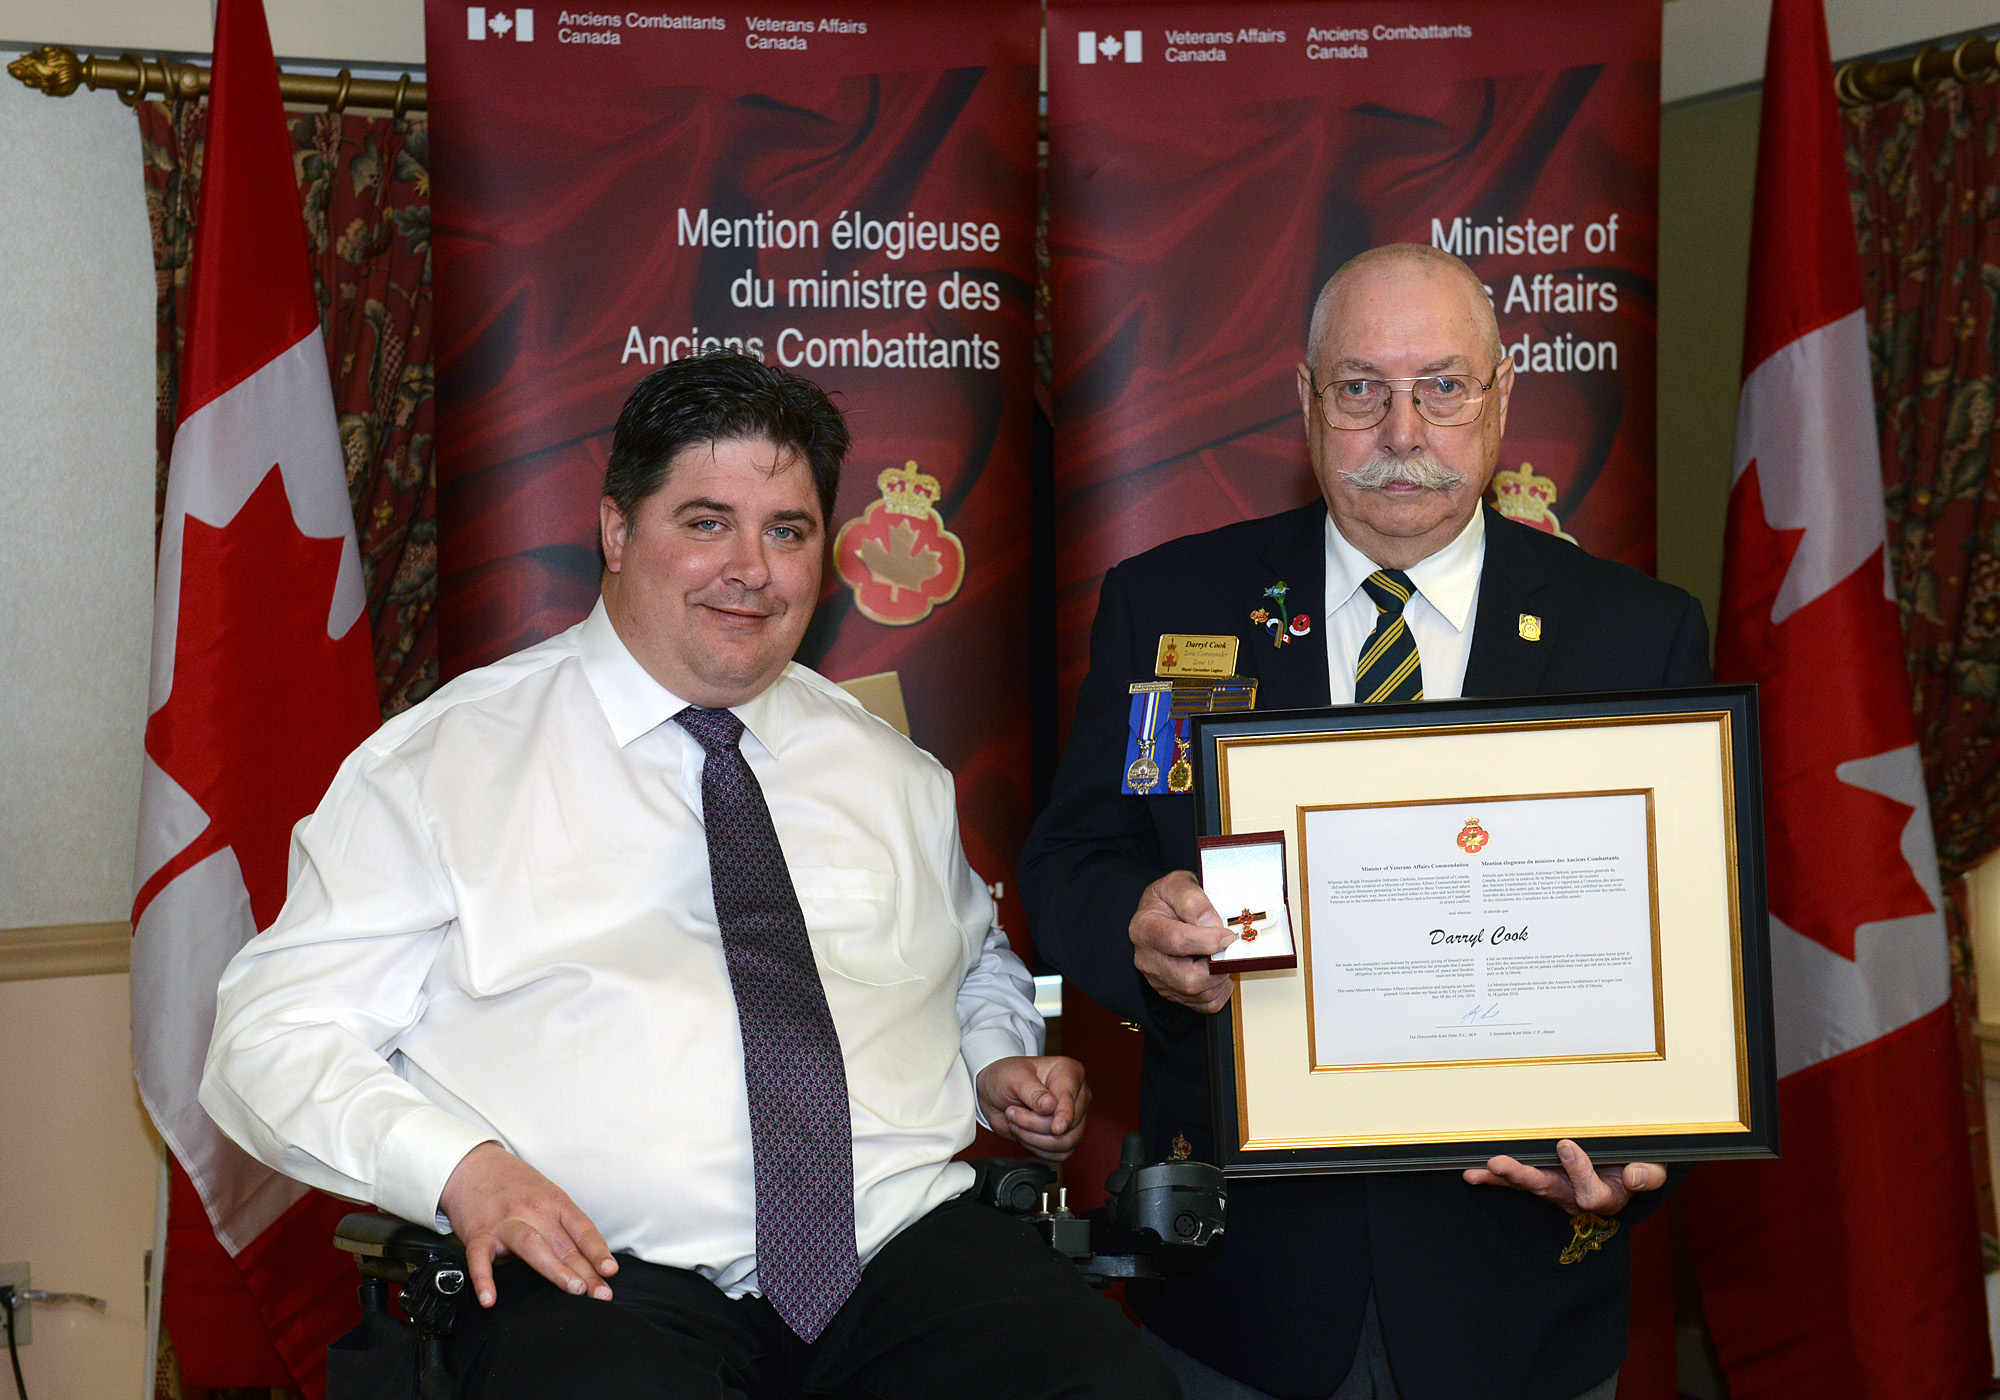 The honorable Kent Hehr, Minister for Veterans Affairs and Mr. Darryl Cook.